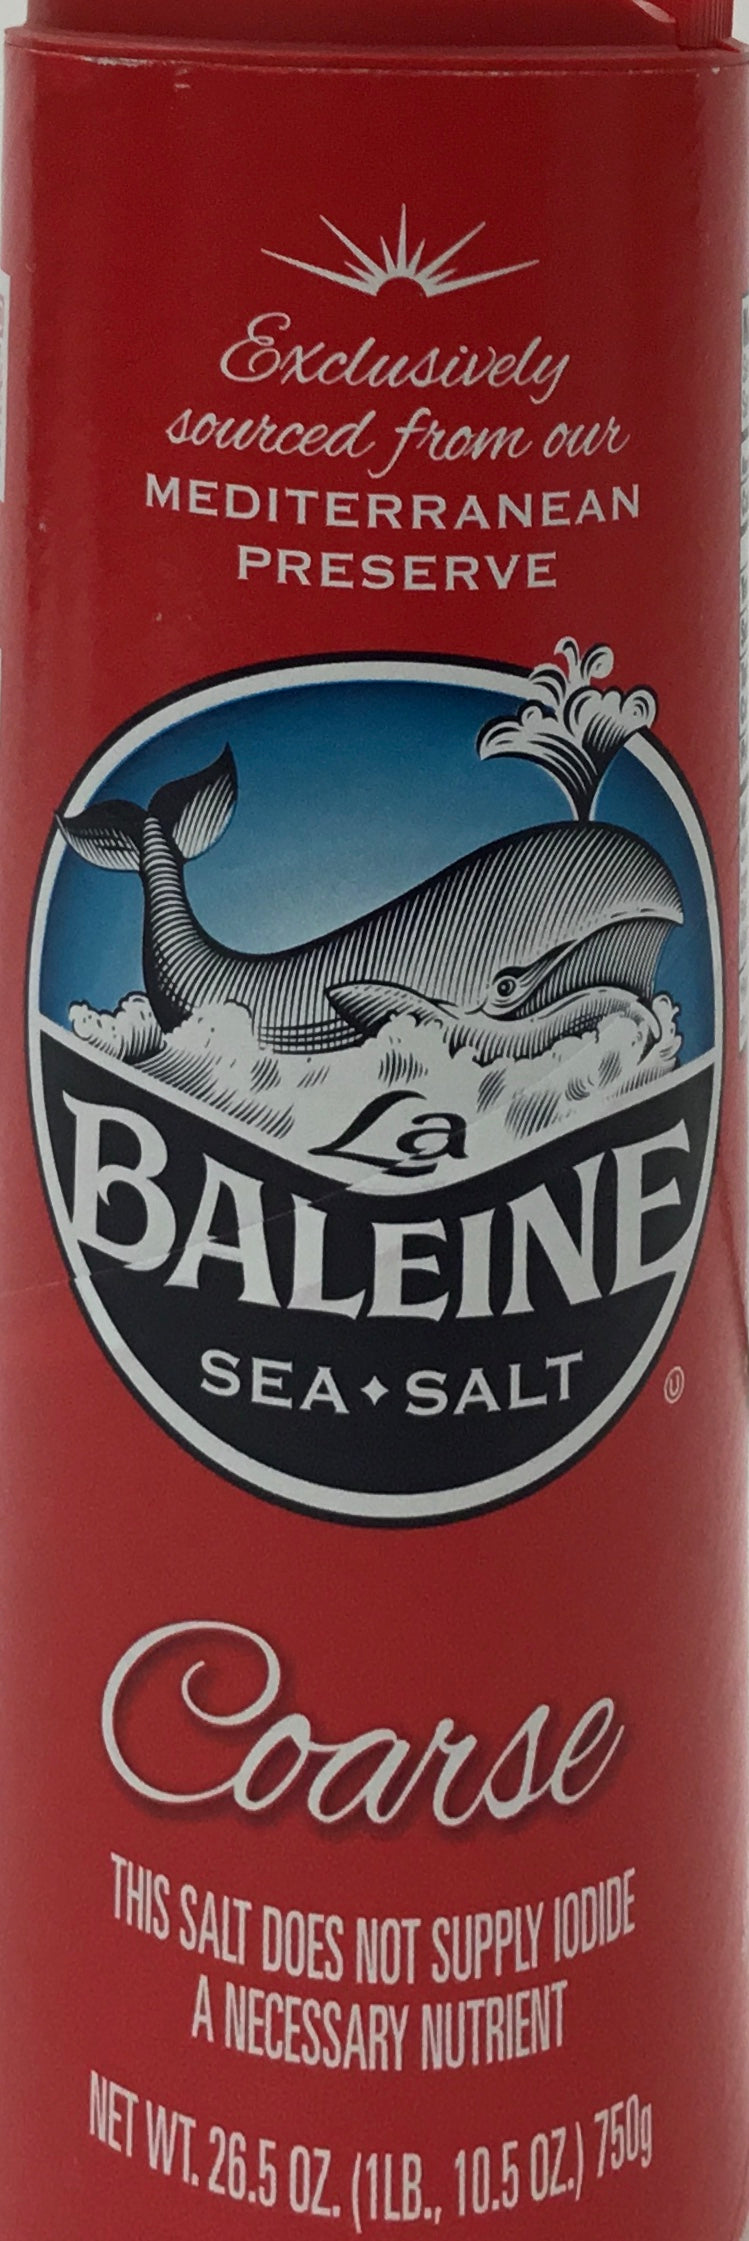 Coarse Sea Salt, La Baleine